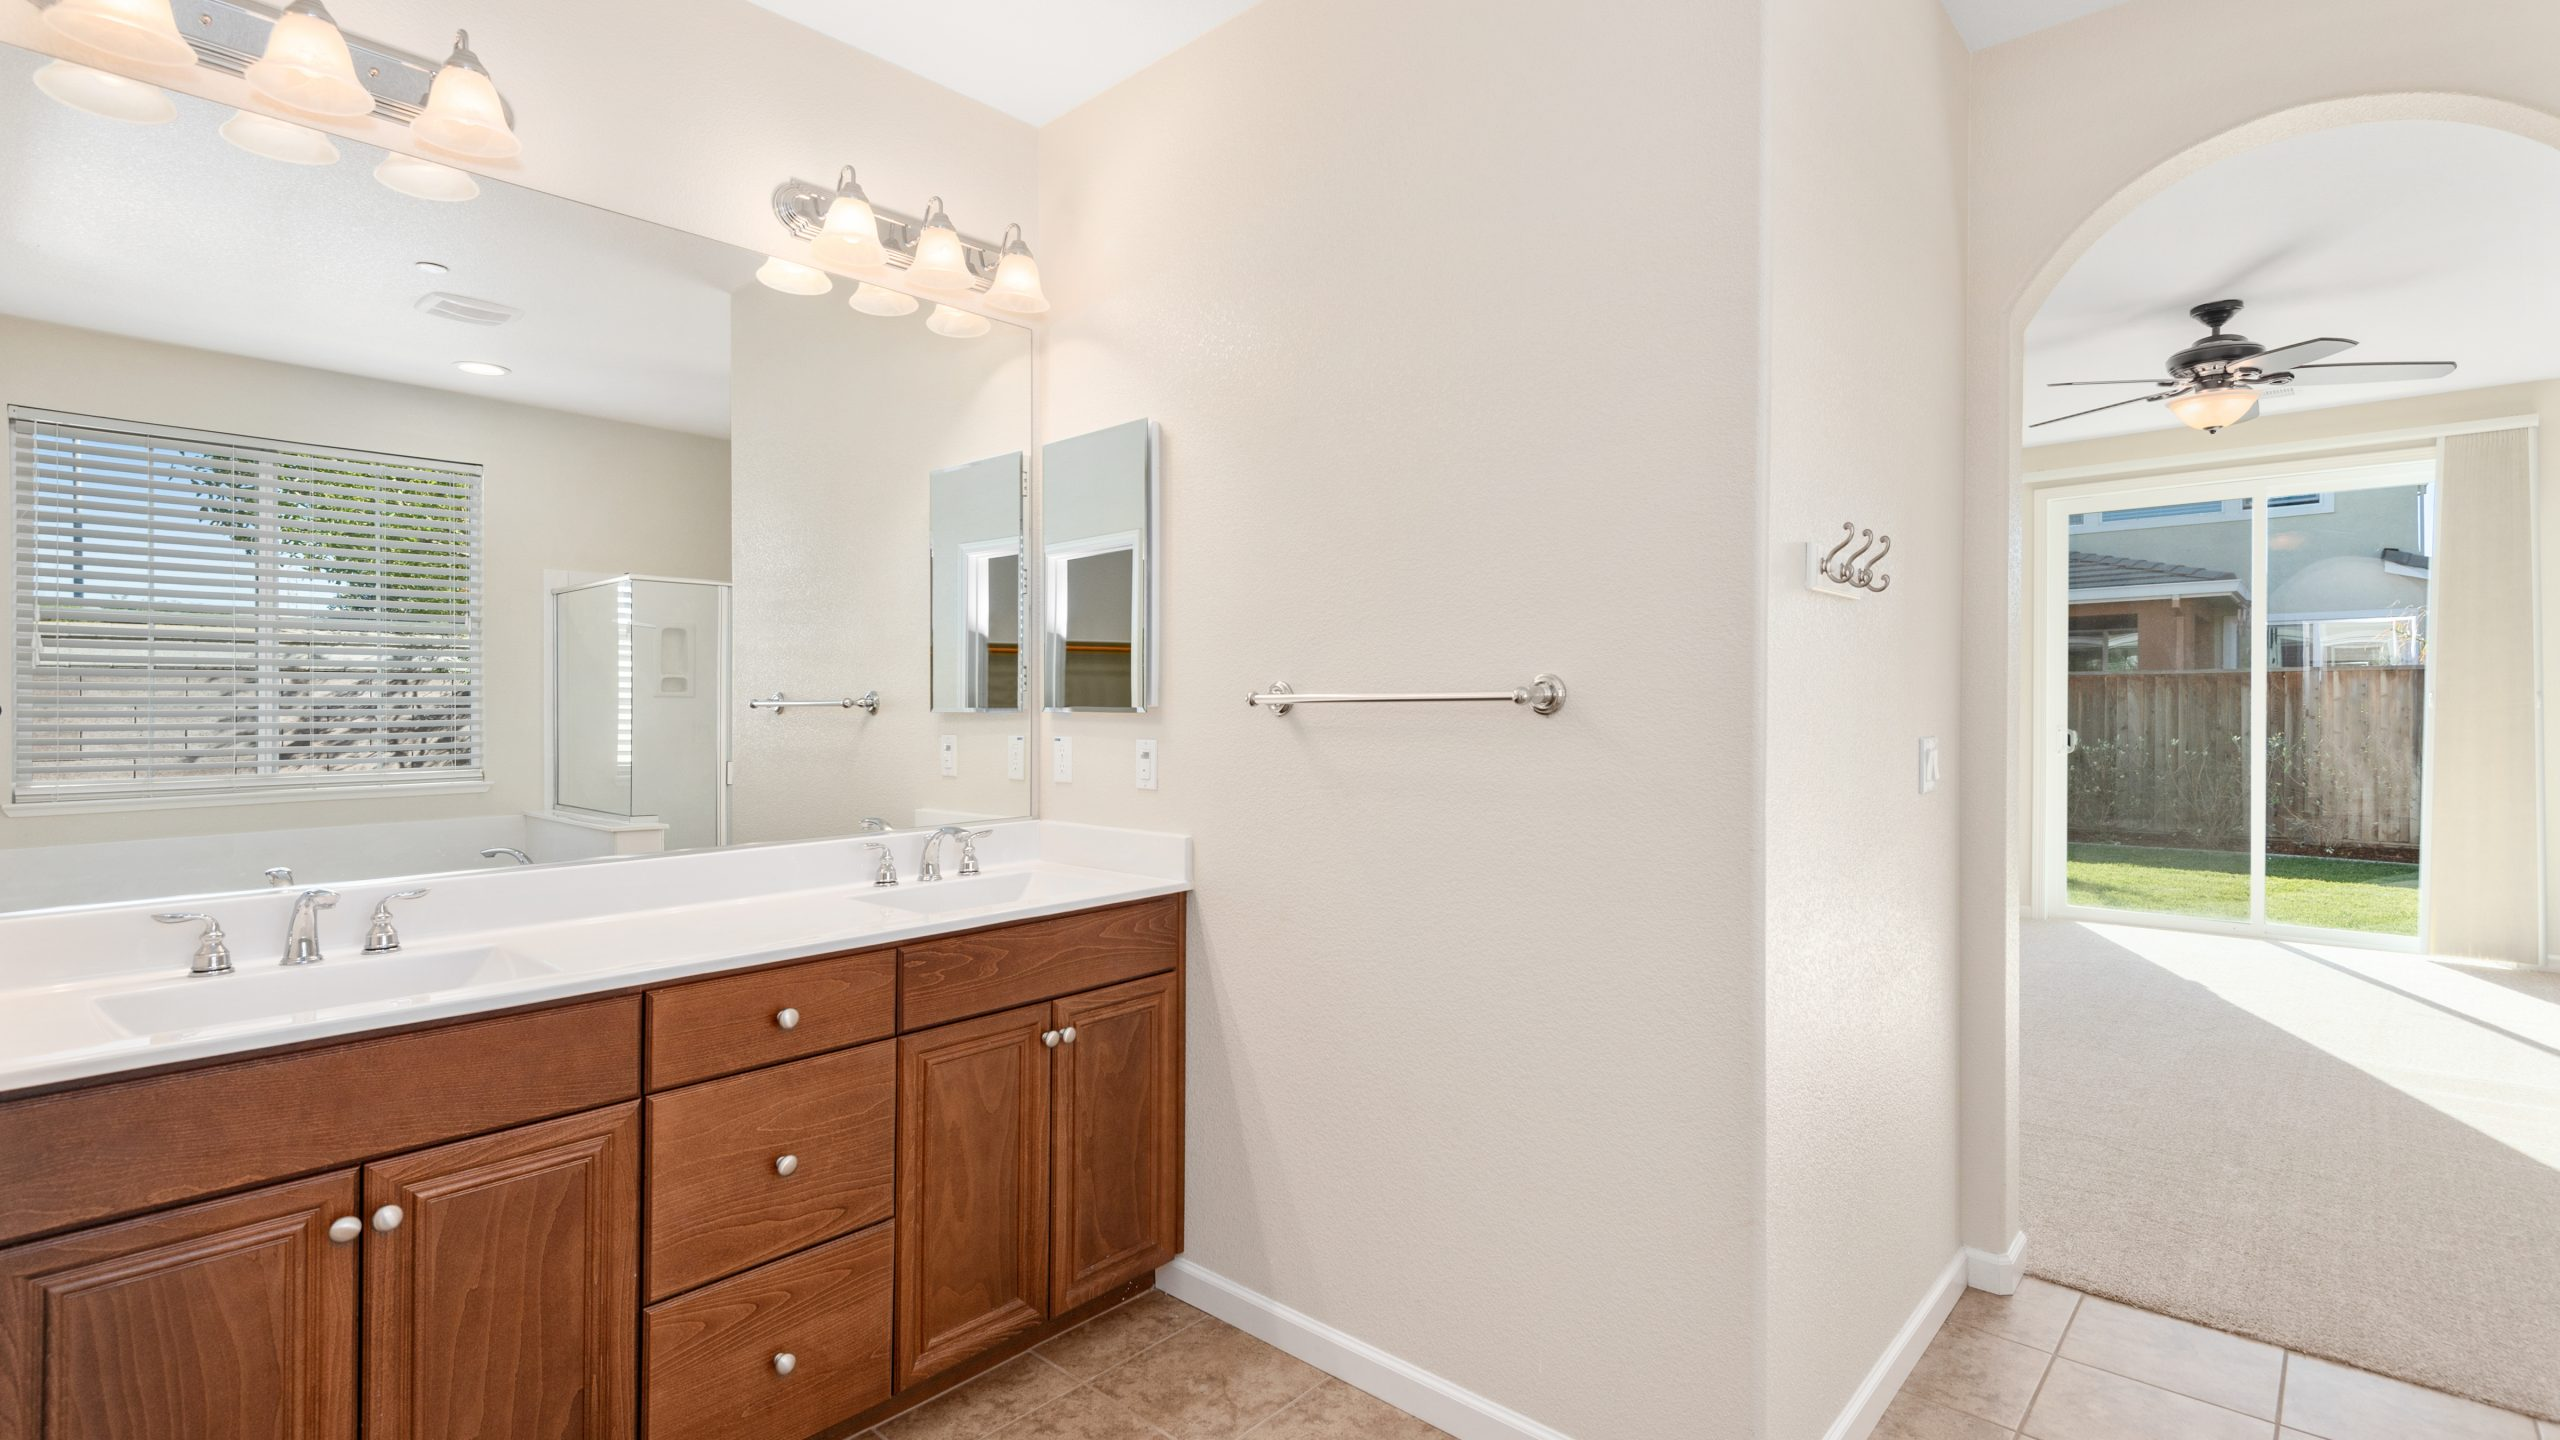 8373-Brookhaven-Circle-Discovery-Bay-21-of-42-1541610498